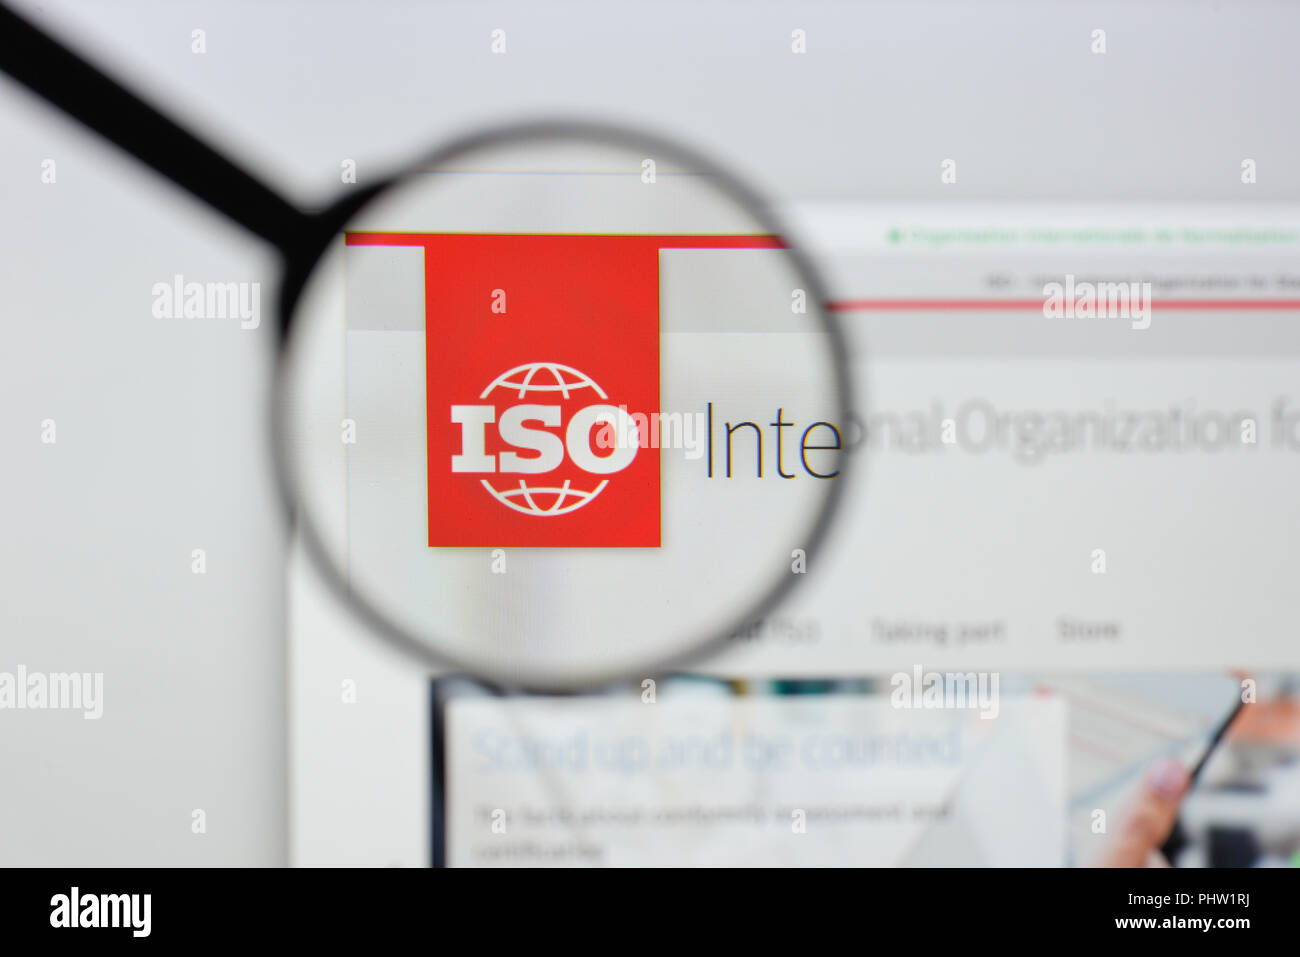 Milan, Italy - August 20, 2018: ISO - International Organization for Standardization website homepage. ISO - International Organization for Standardiz - Stock Image